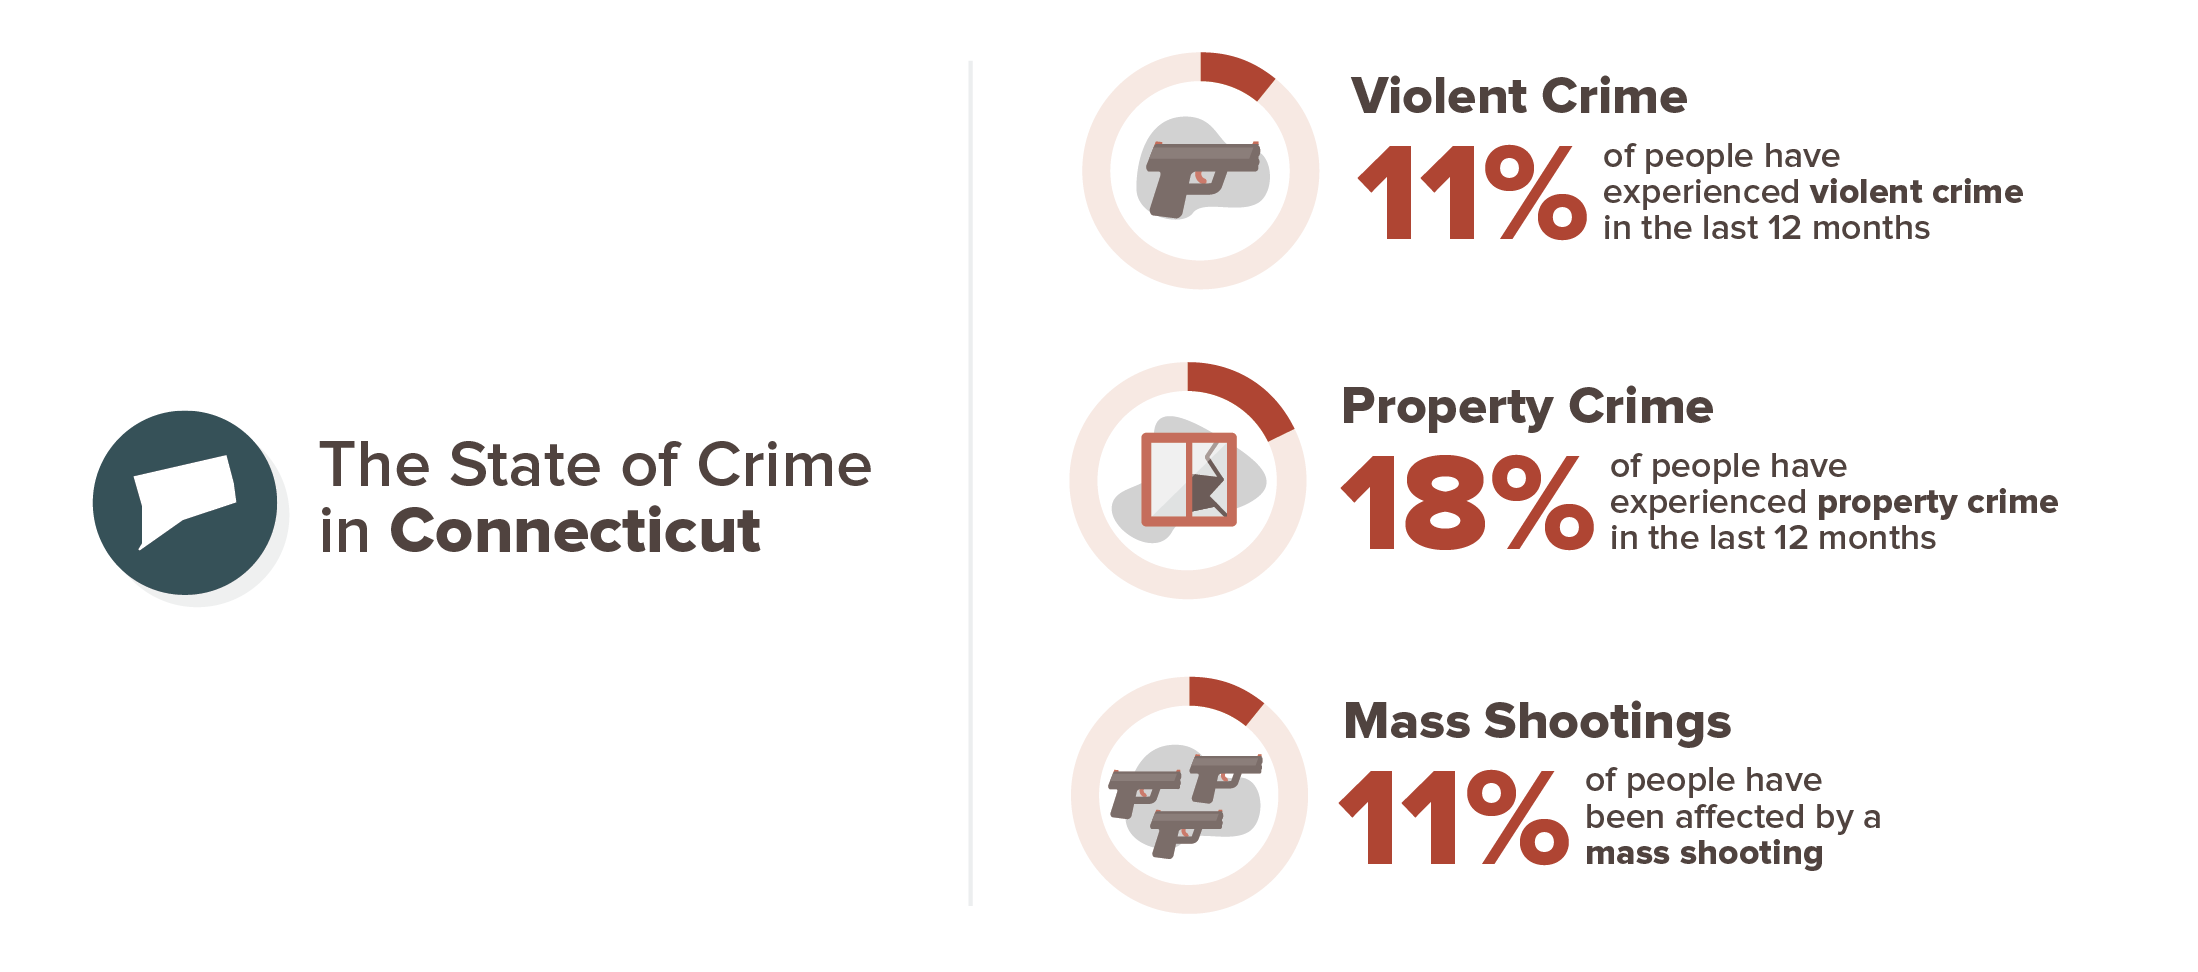 Connecticut crime experience infographic; 11% violent crime, 18% property crime, 11% mass shooting